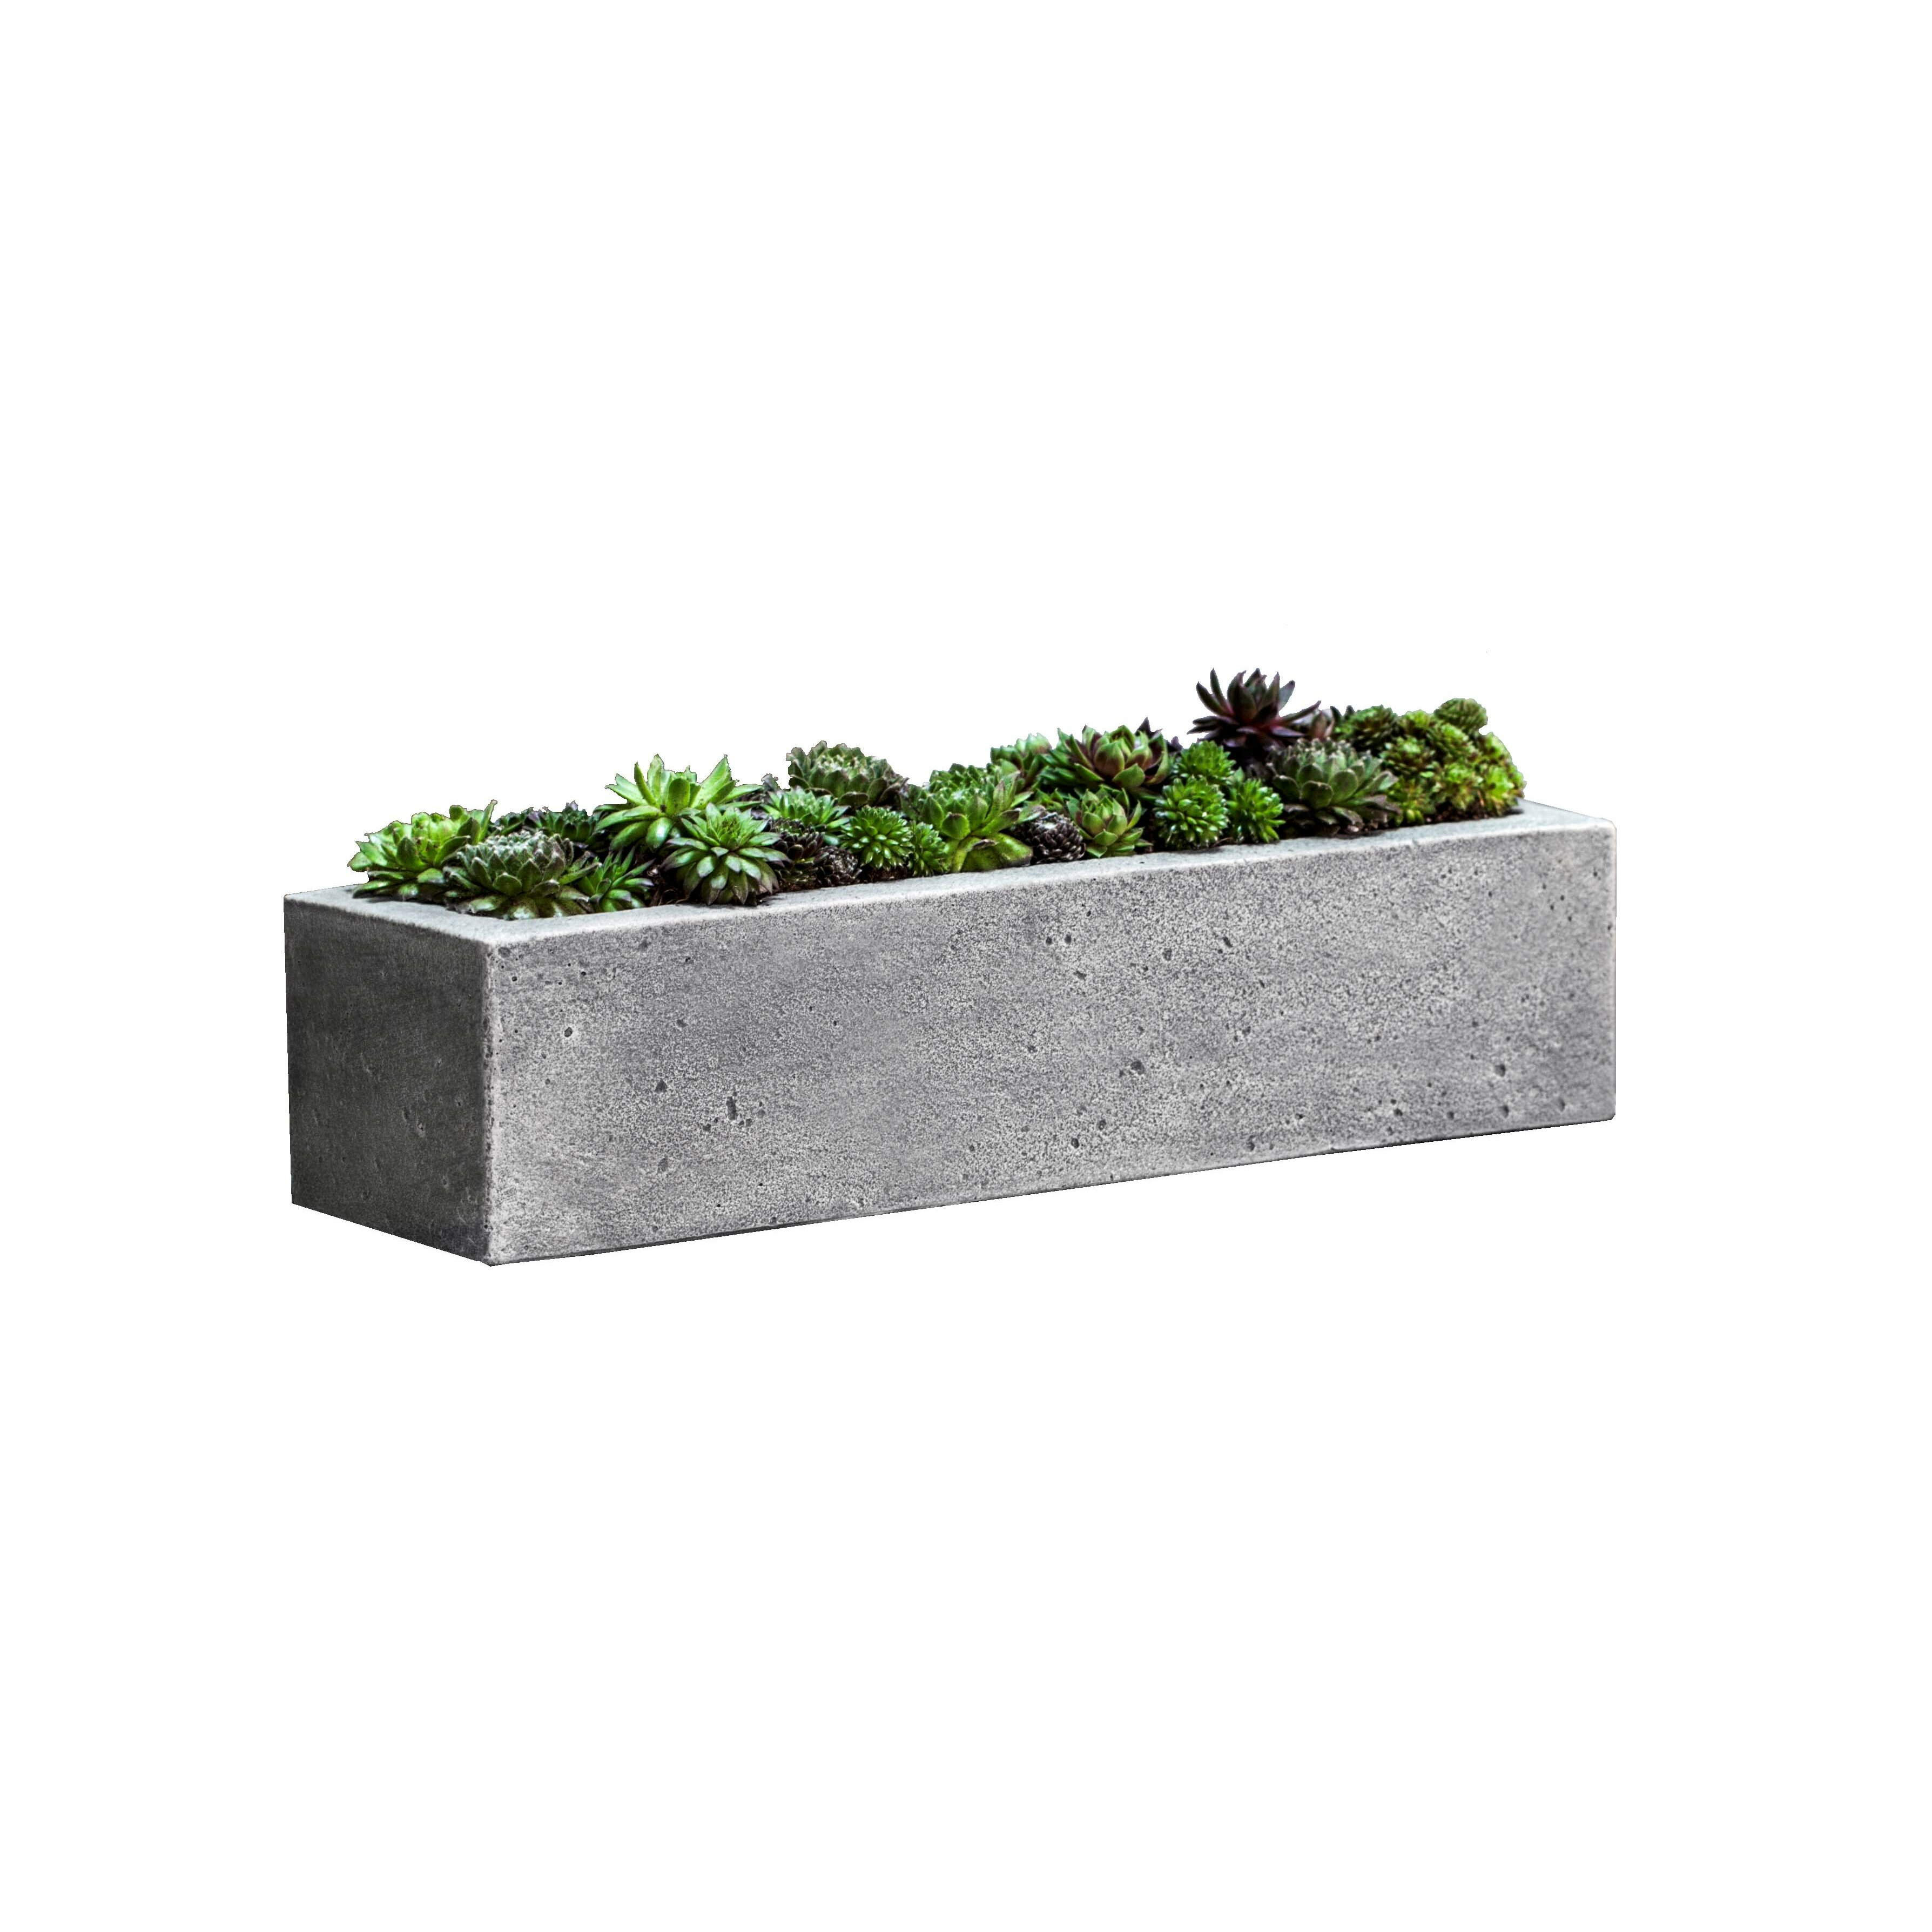 Campania International Inc Garden Terrace Rectangular